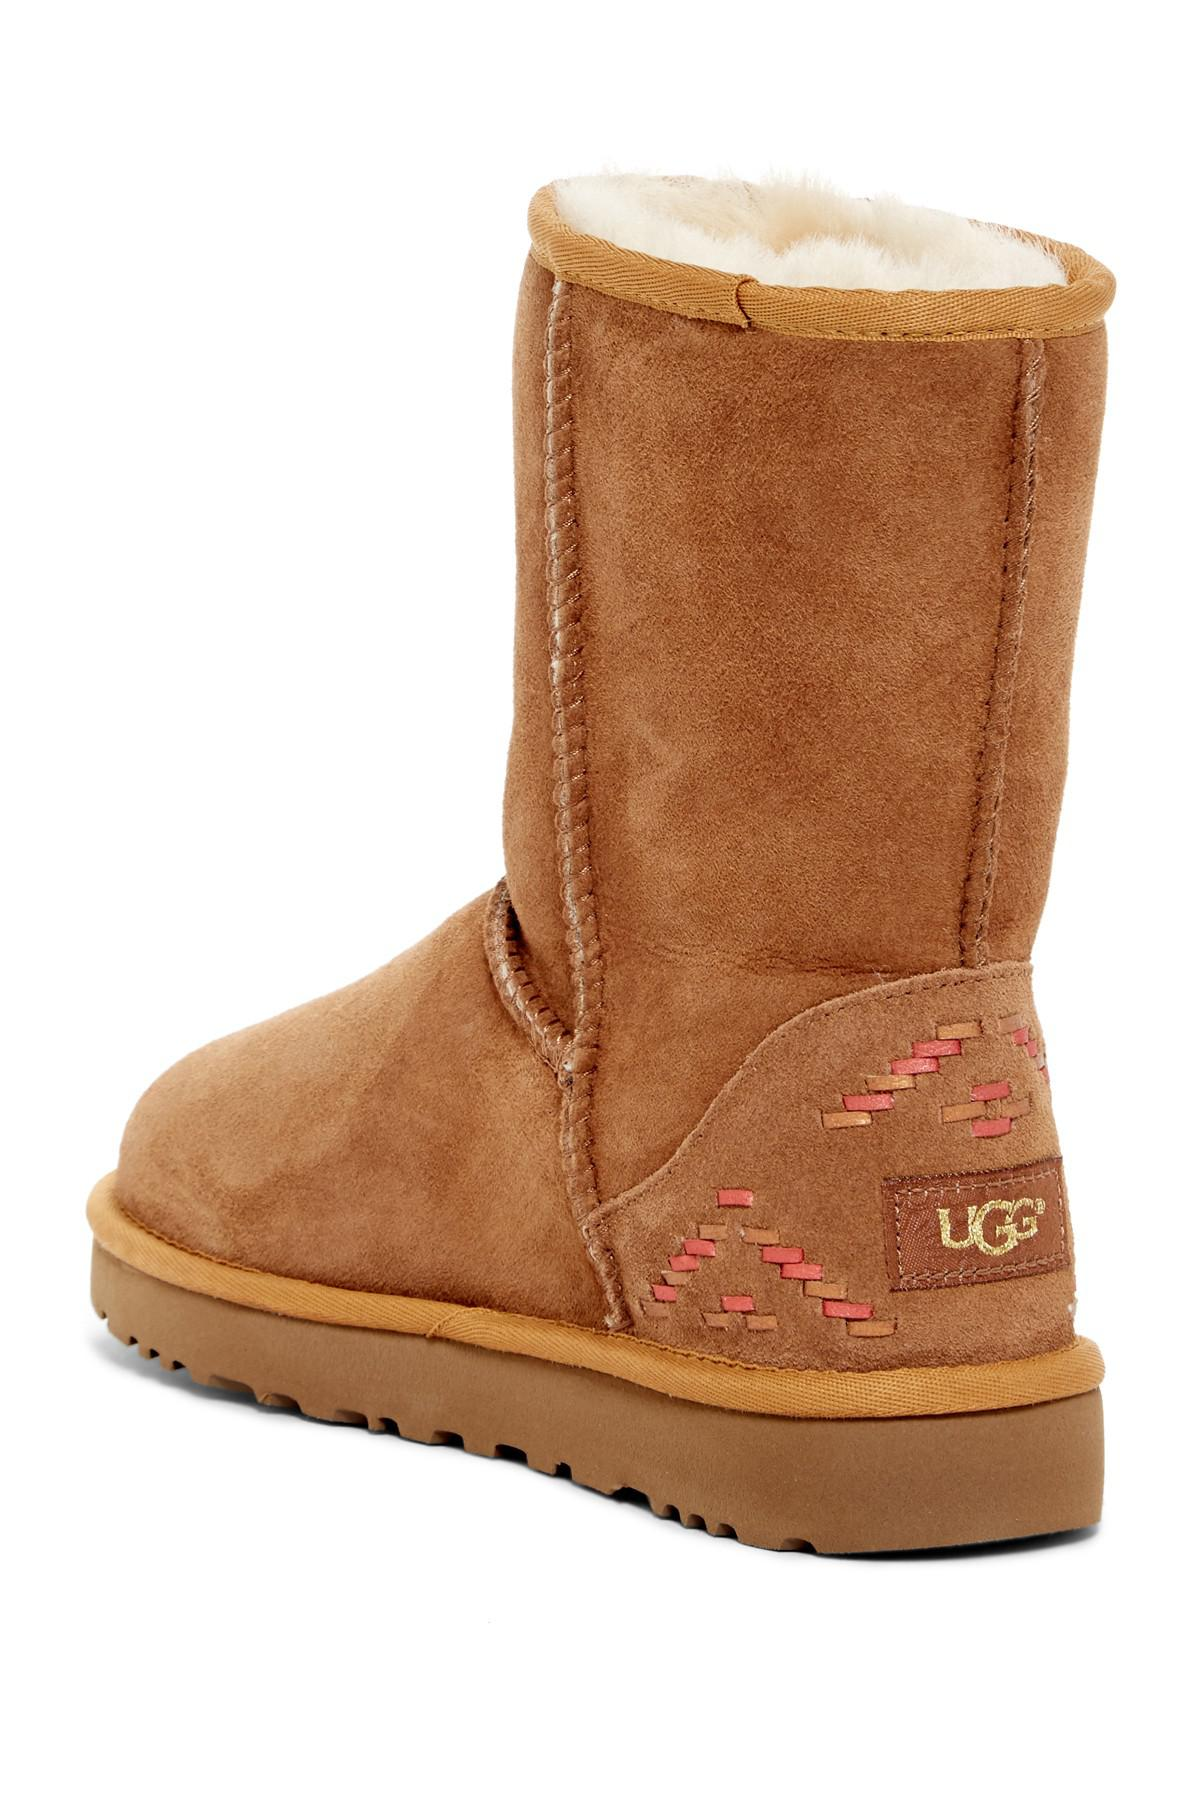 3722ad300a4 Ugg Brown Australia Classic Short Genuine Shearling Lined - Rustic Weave  Boot